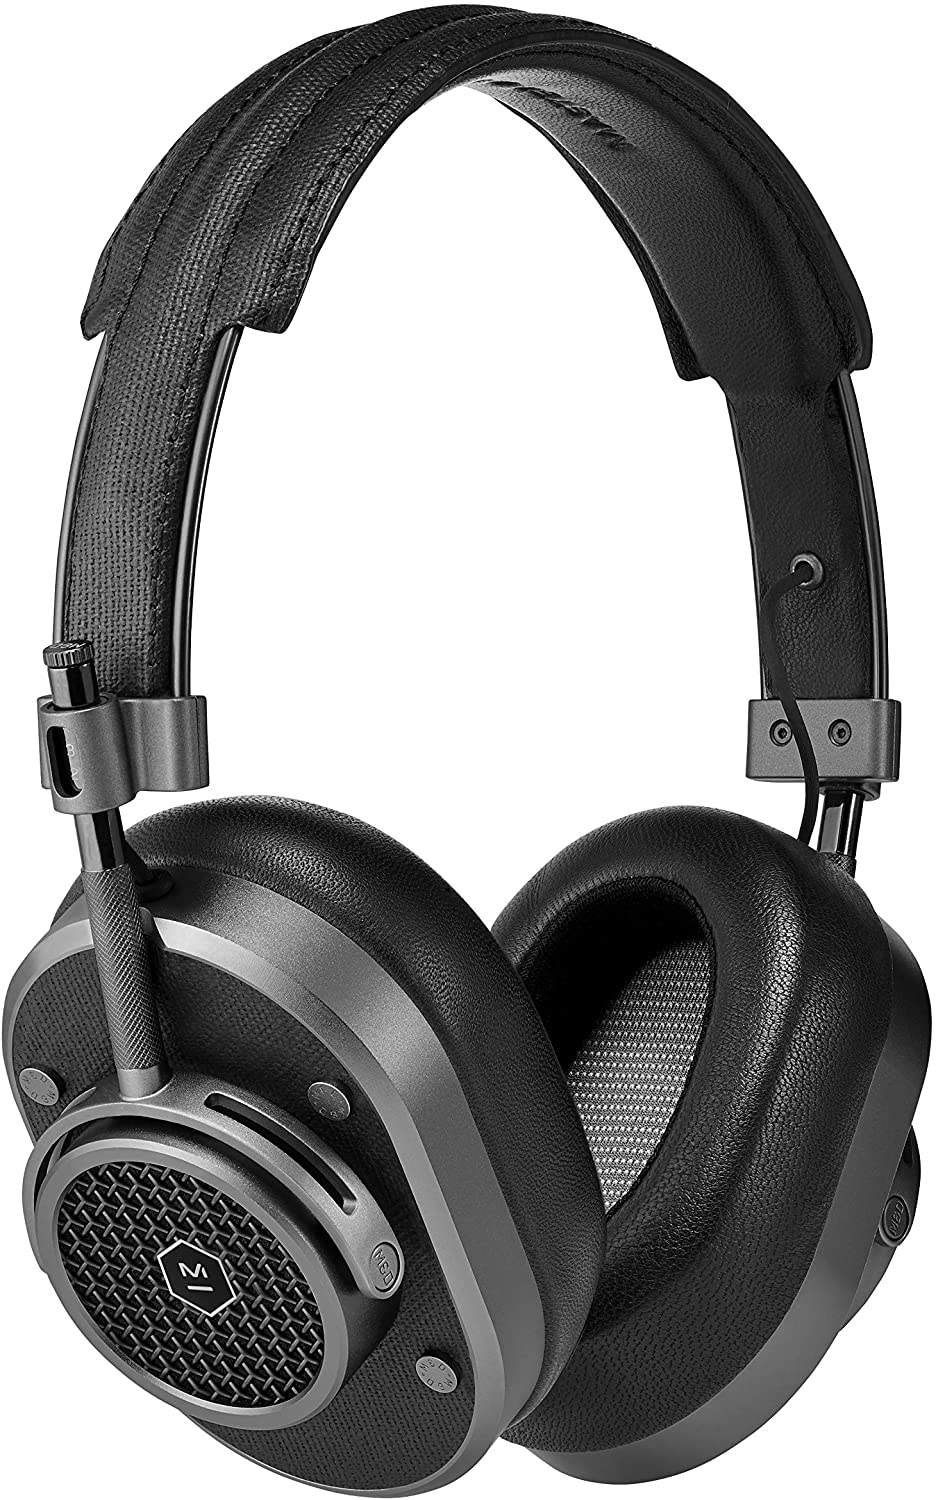 Master & Dynamic MH40 Wireless Over-Ear Headphones Review